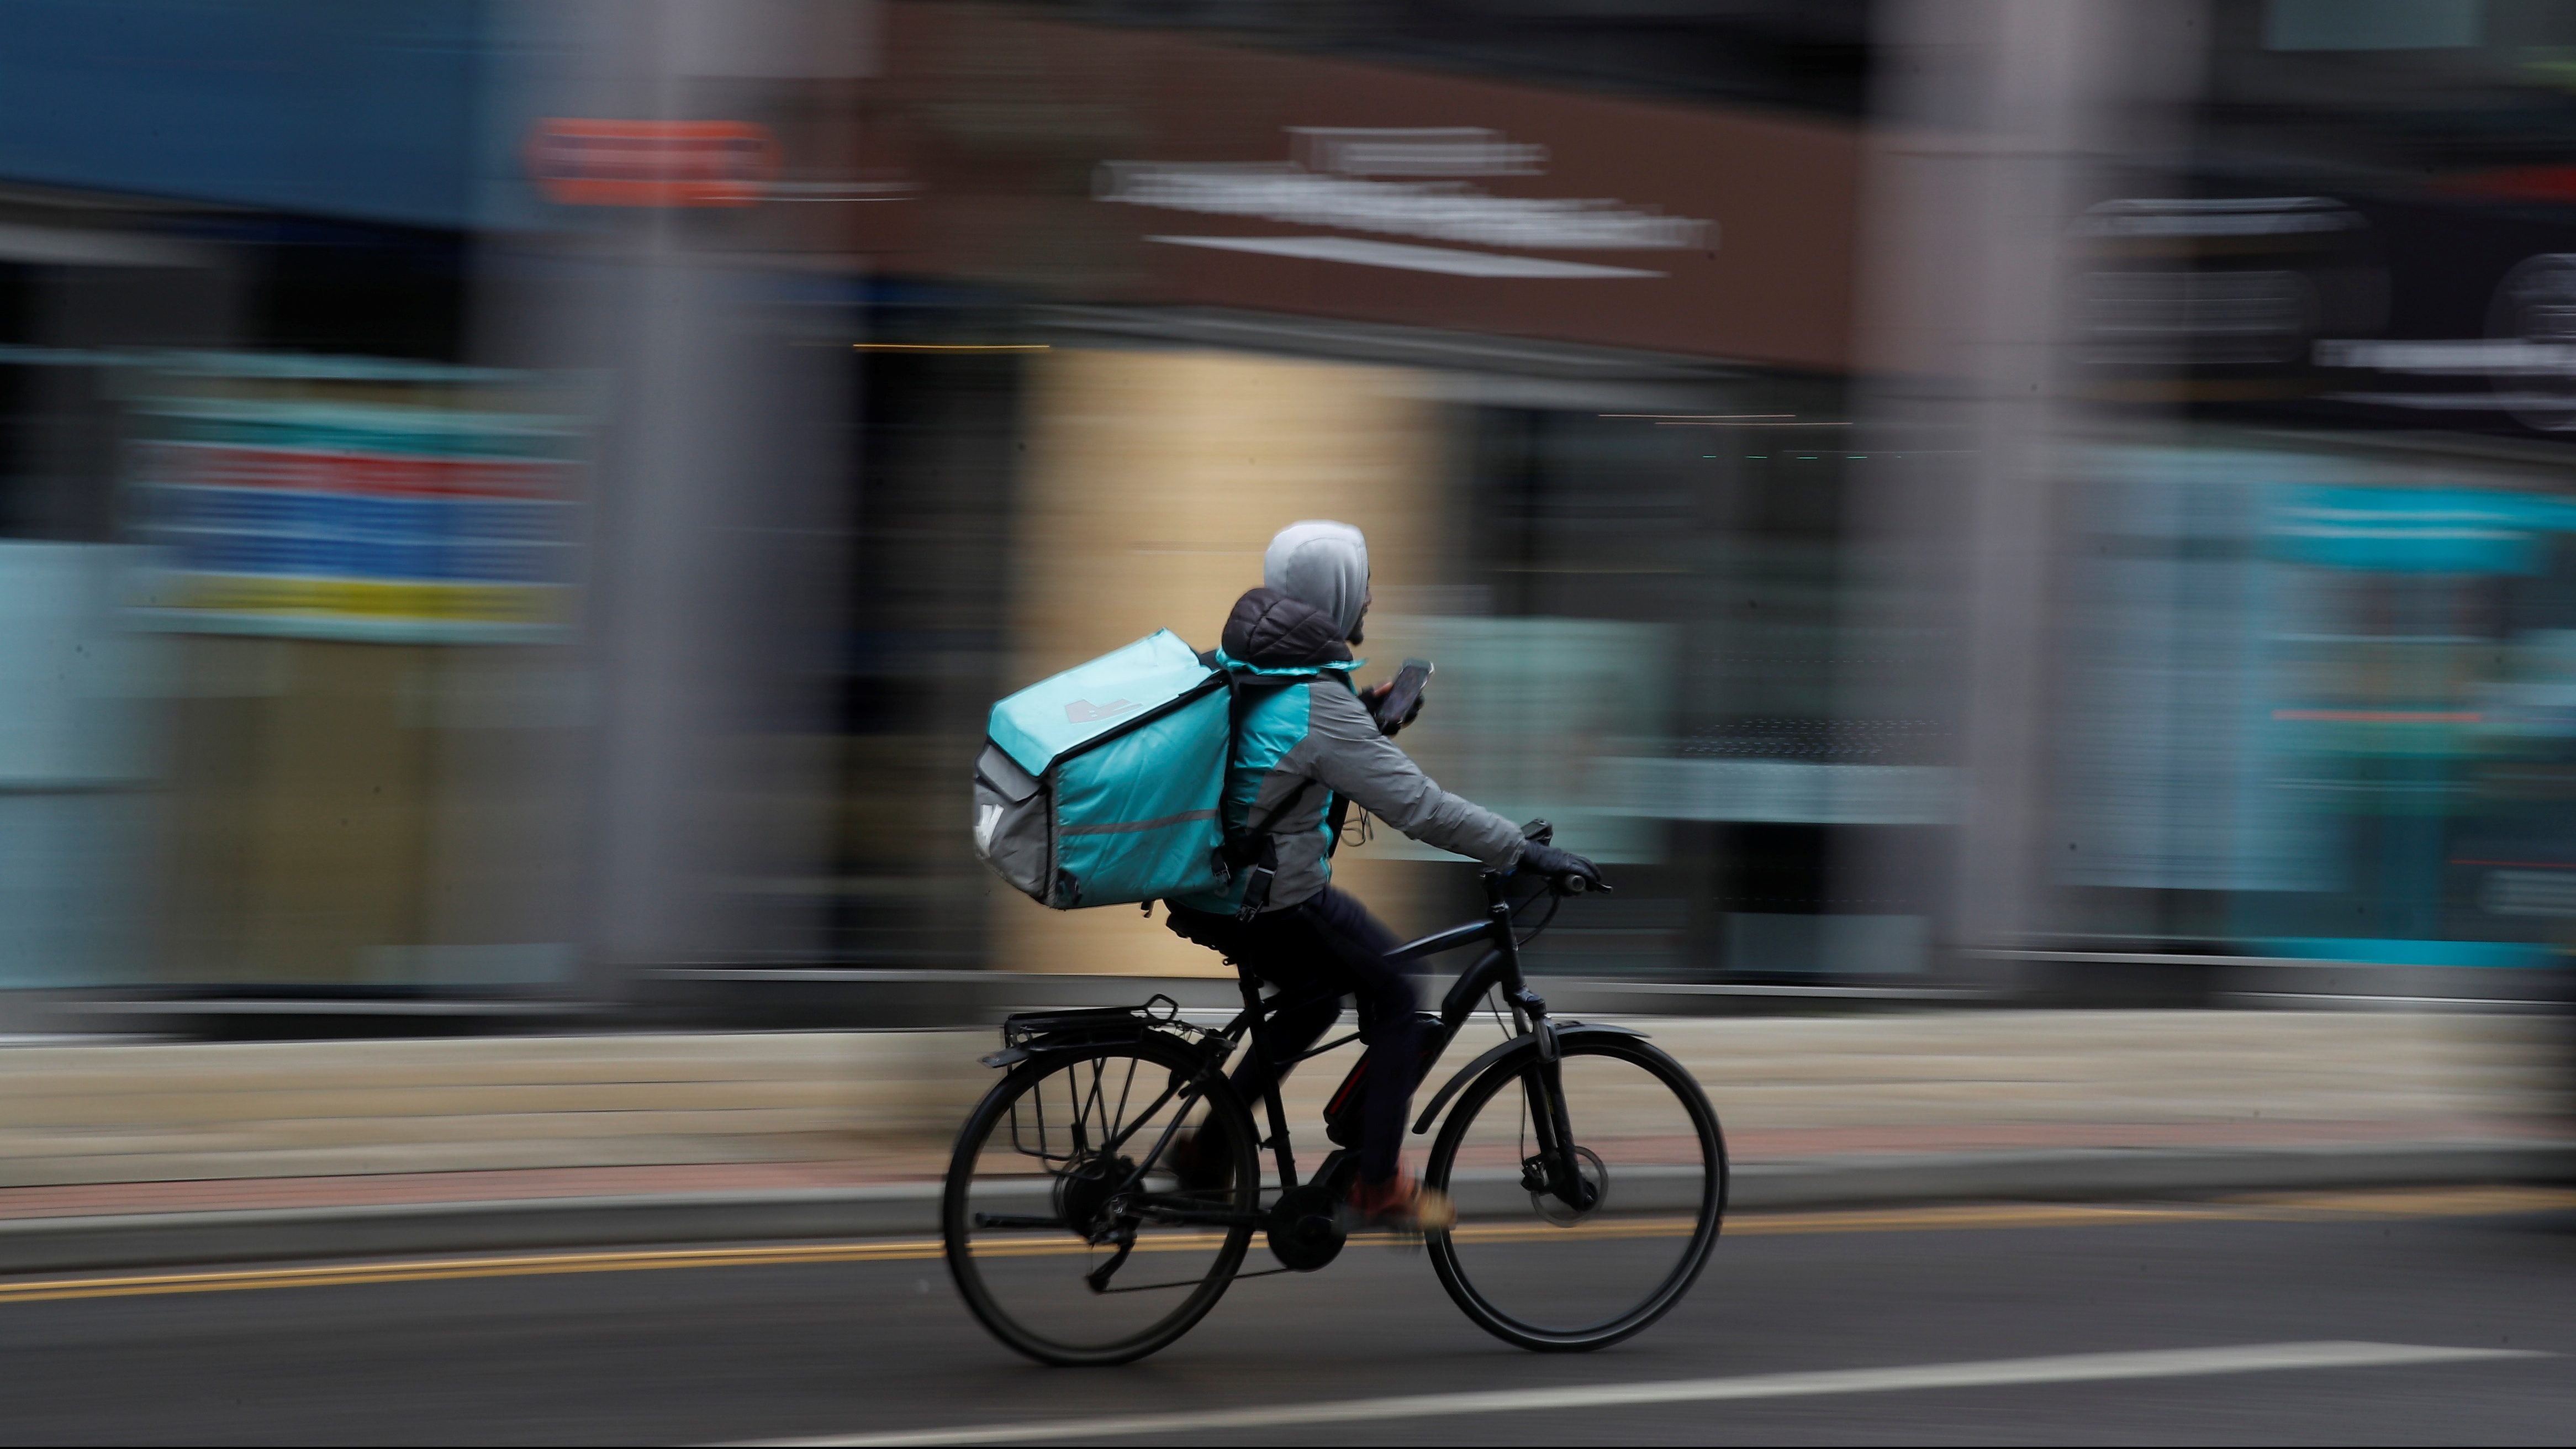 A deliveroo delivery driver cycles through the centre of Manchester